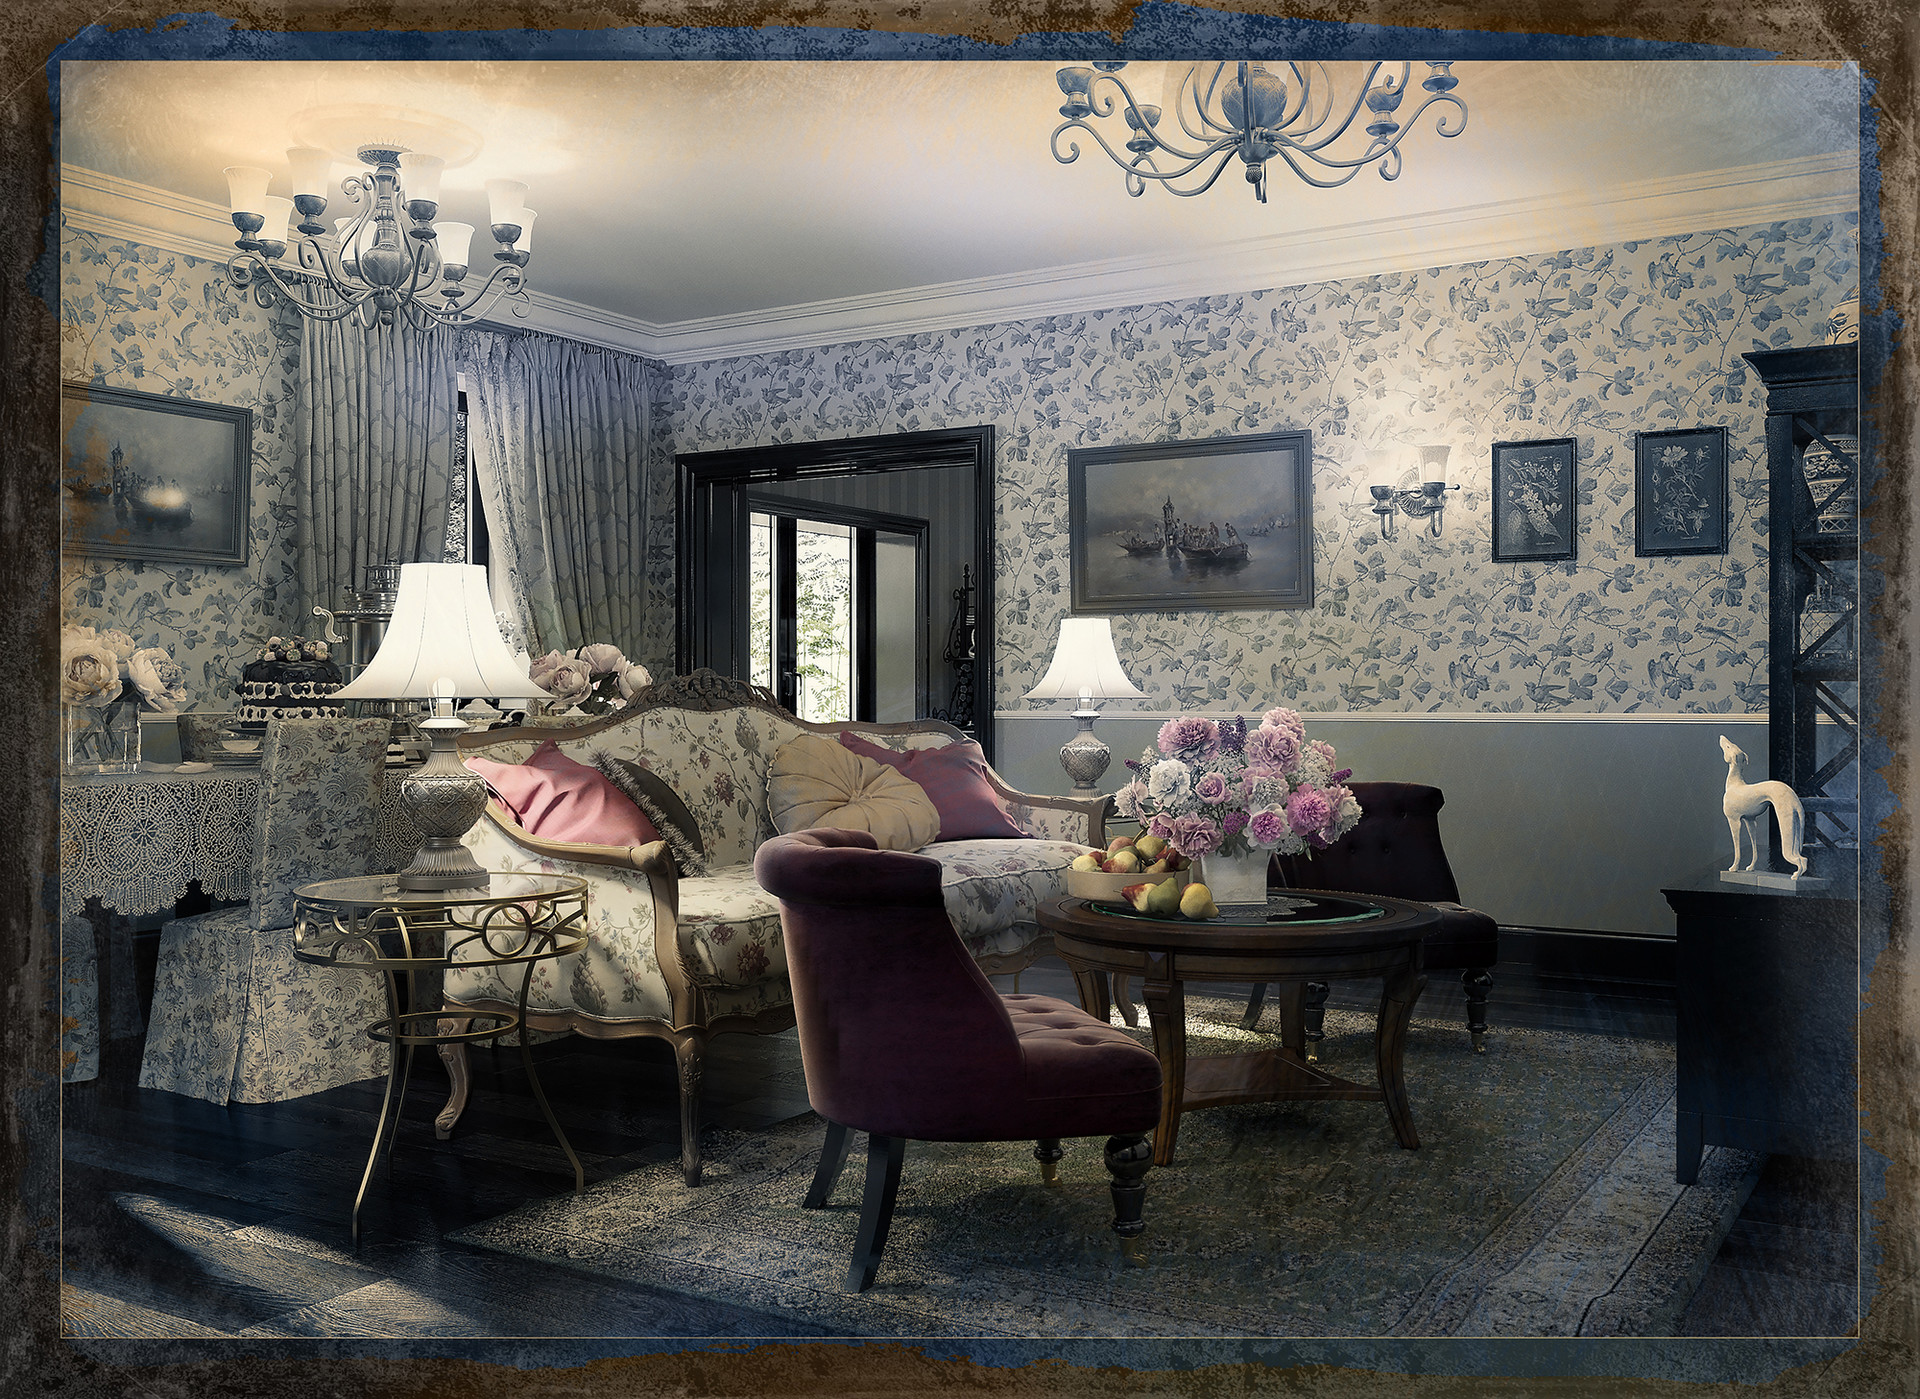 Russian Style Sitting Room And Dining Room:  Https://daryagirina.blogspot.com/2018/06/tatyanas Cottage Interior Design  And.html